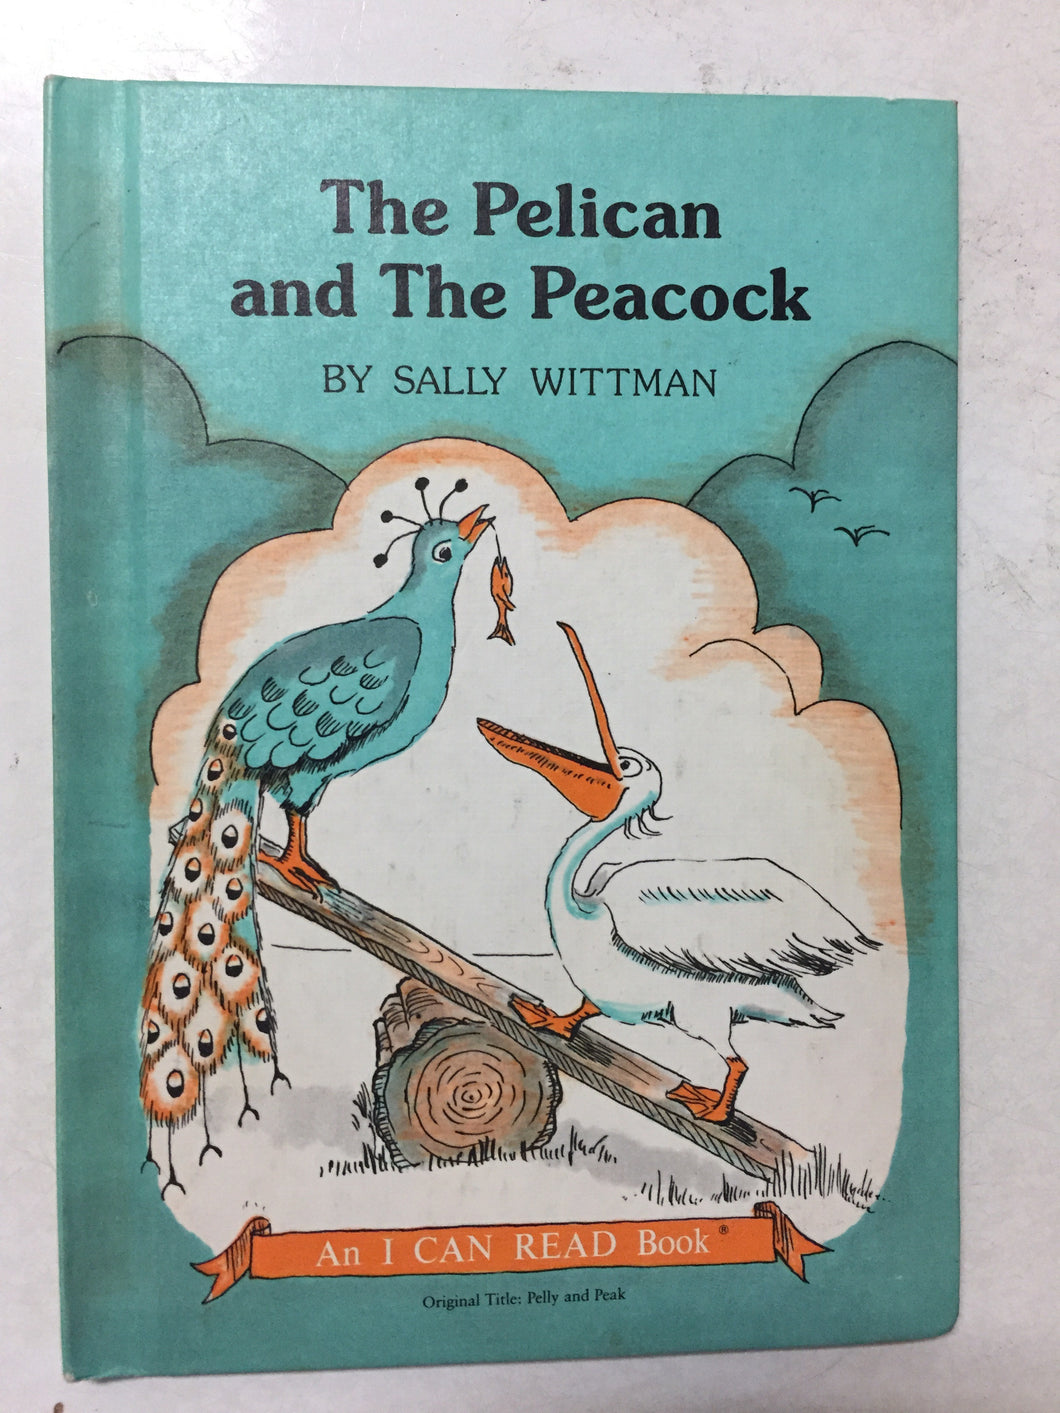 The Pelican and The Peacock - Slickcatbooks